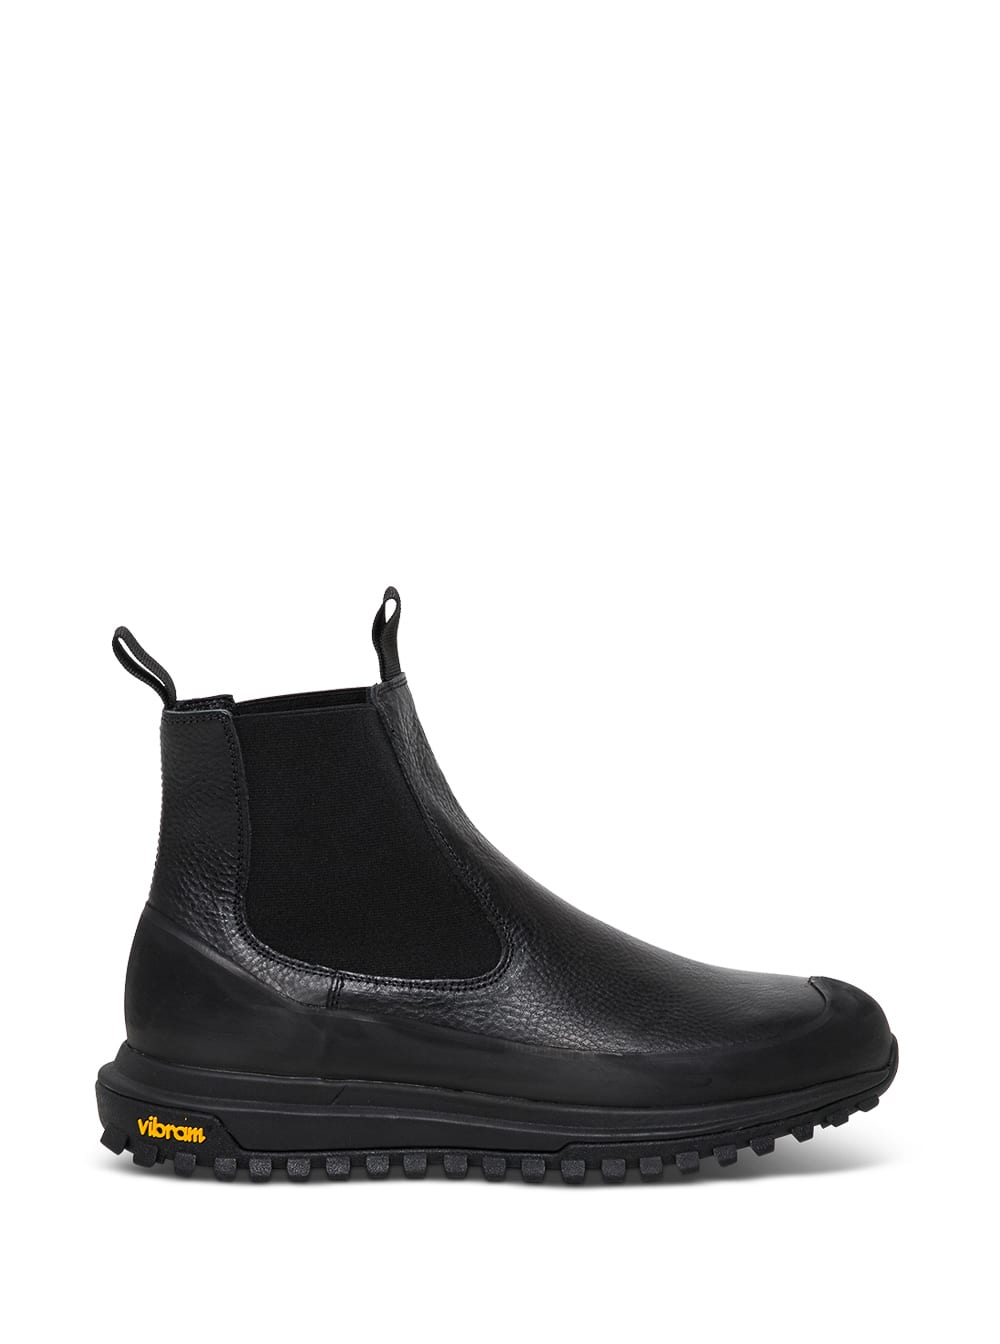 Ramon Leather Ankle Boots With Vibram Rubber Sole